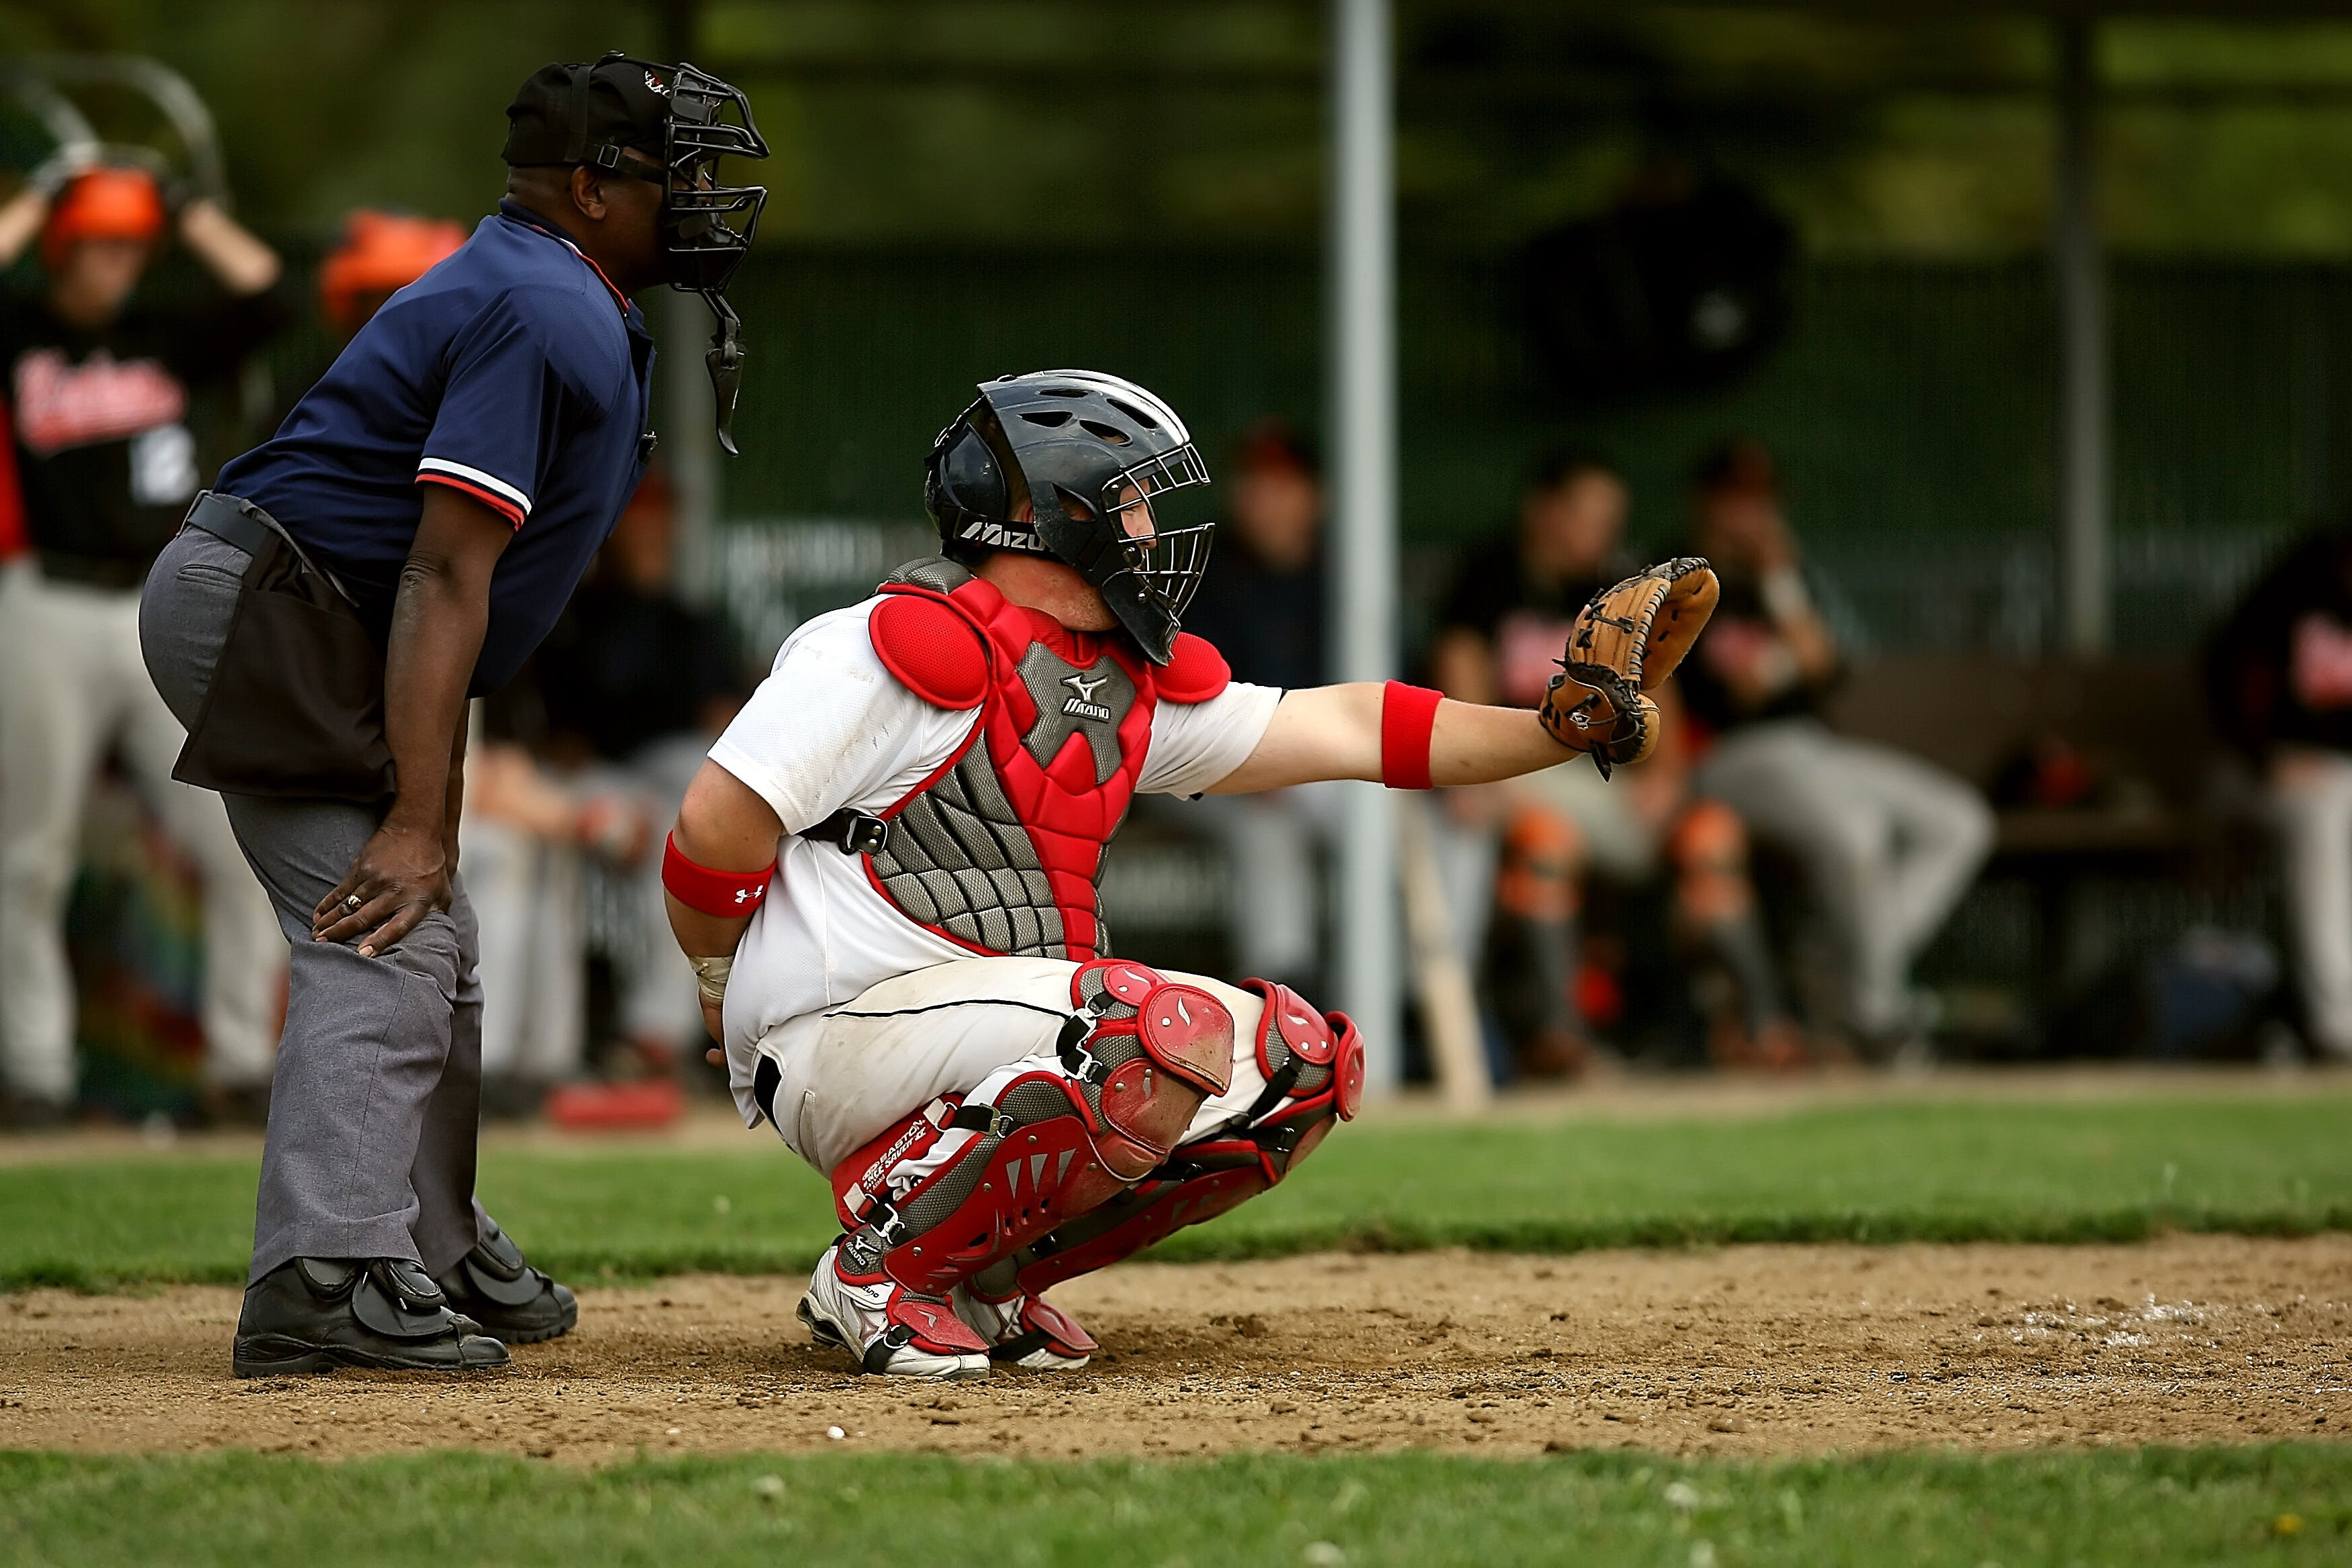 White and Red Baseball Player With Black Face Helmet and Brown Leather Mitts